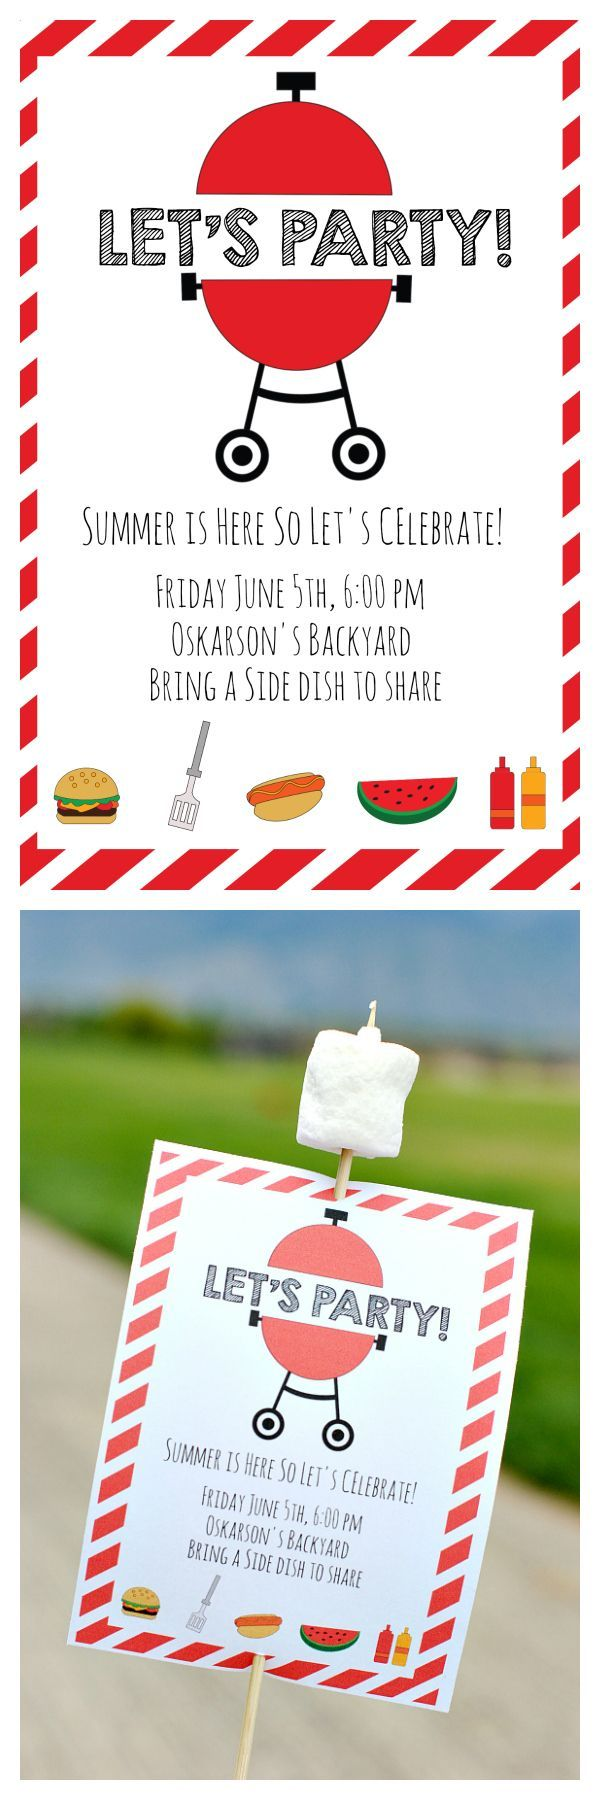 13 best redneck world images on pinterest haha advertising and free printable summer bbq invitations and a cute idea to present them monicamarmolfo Choice Image